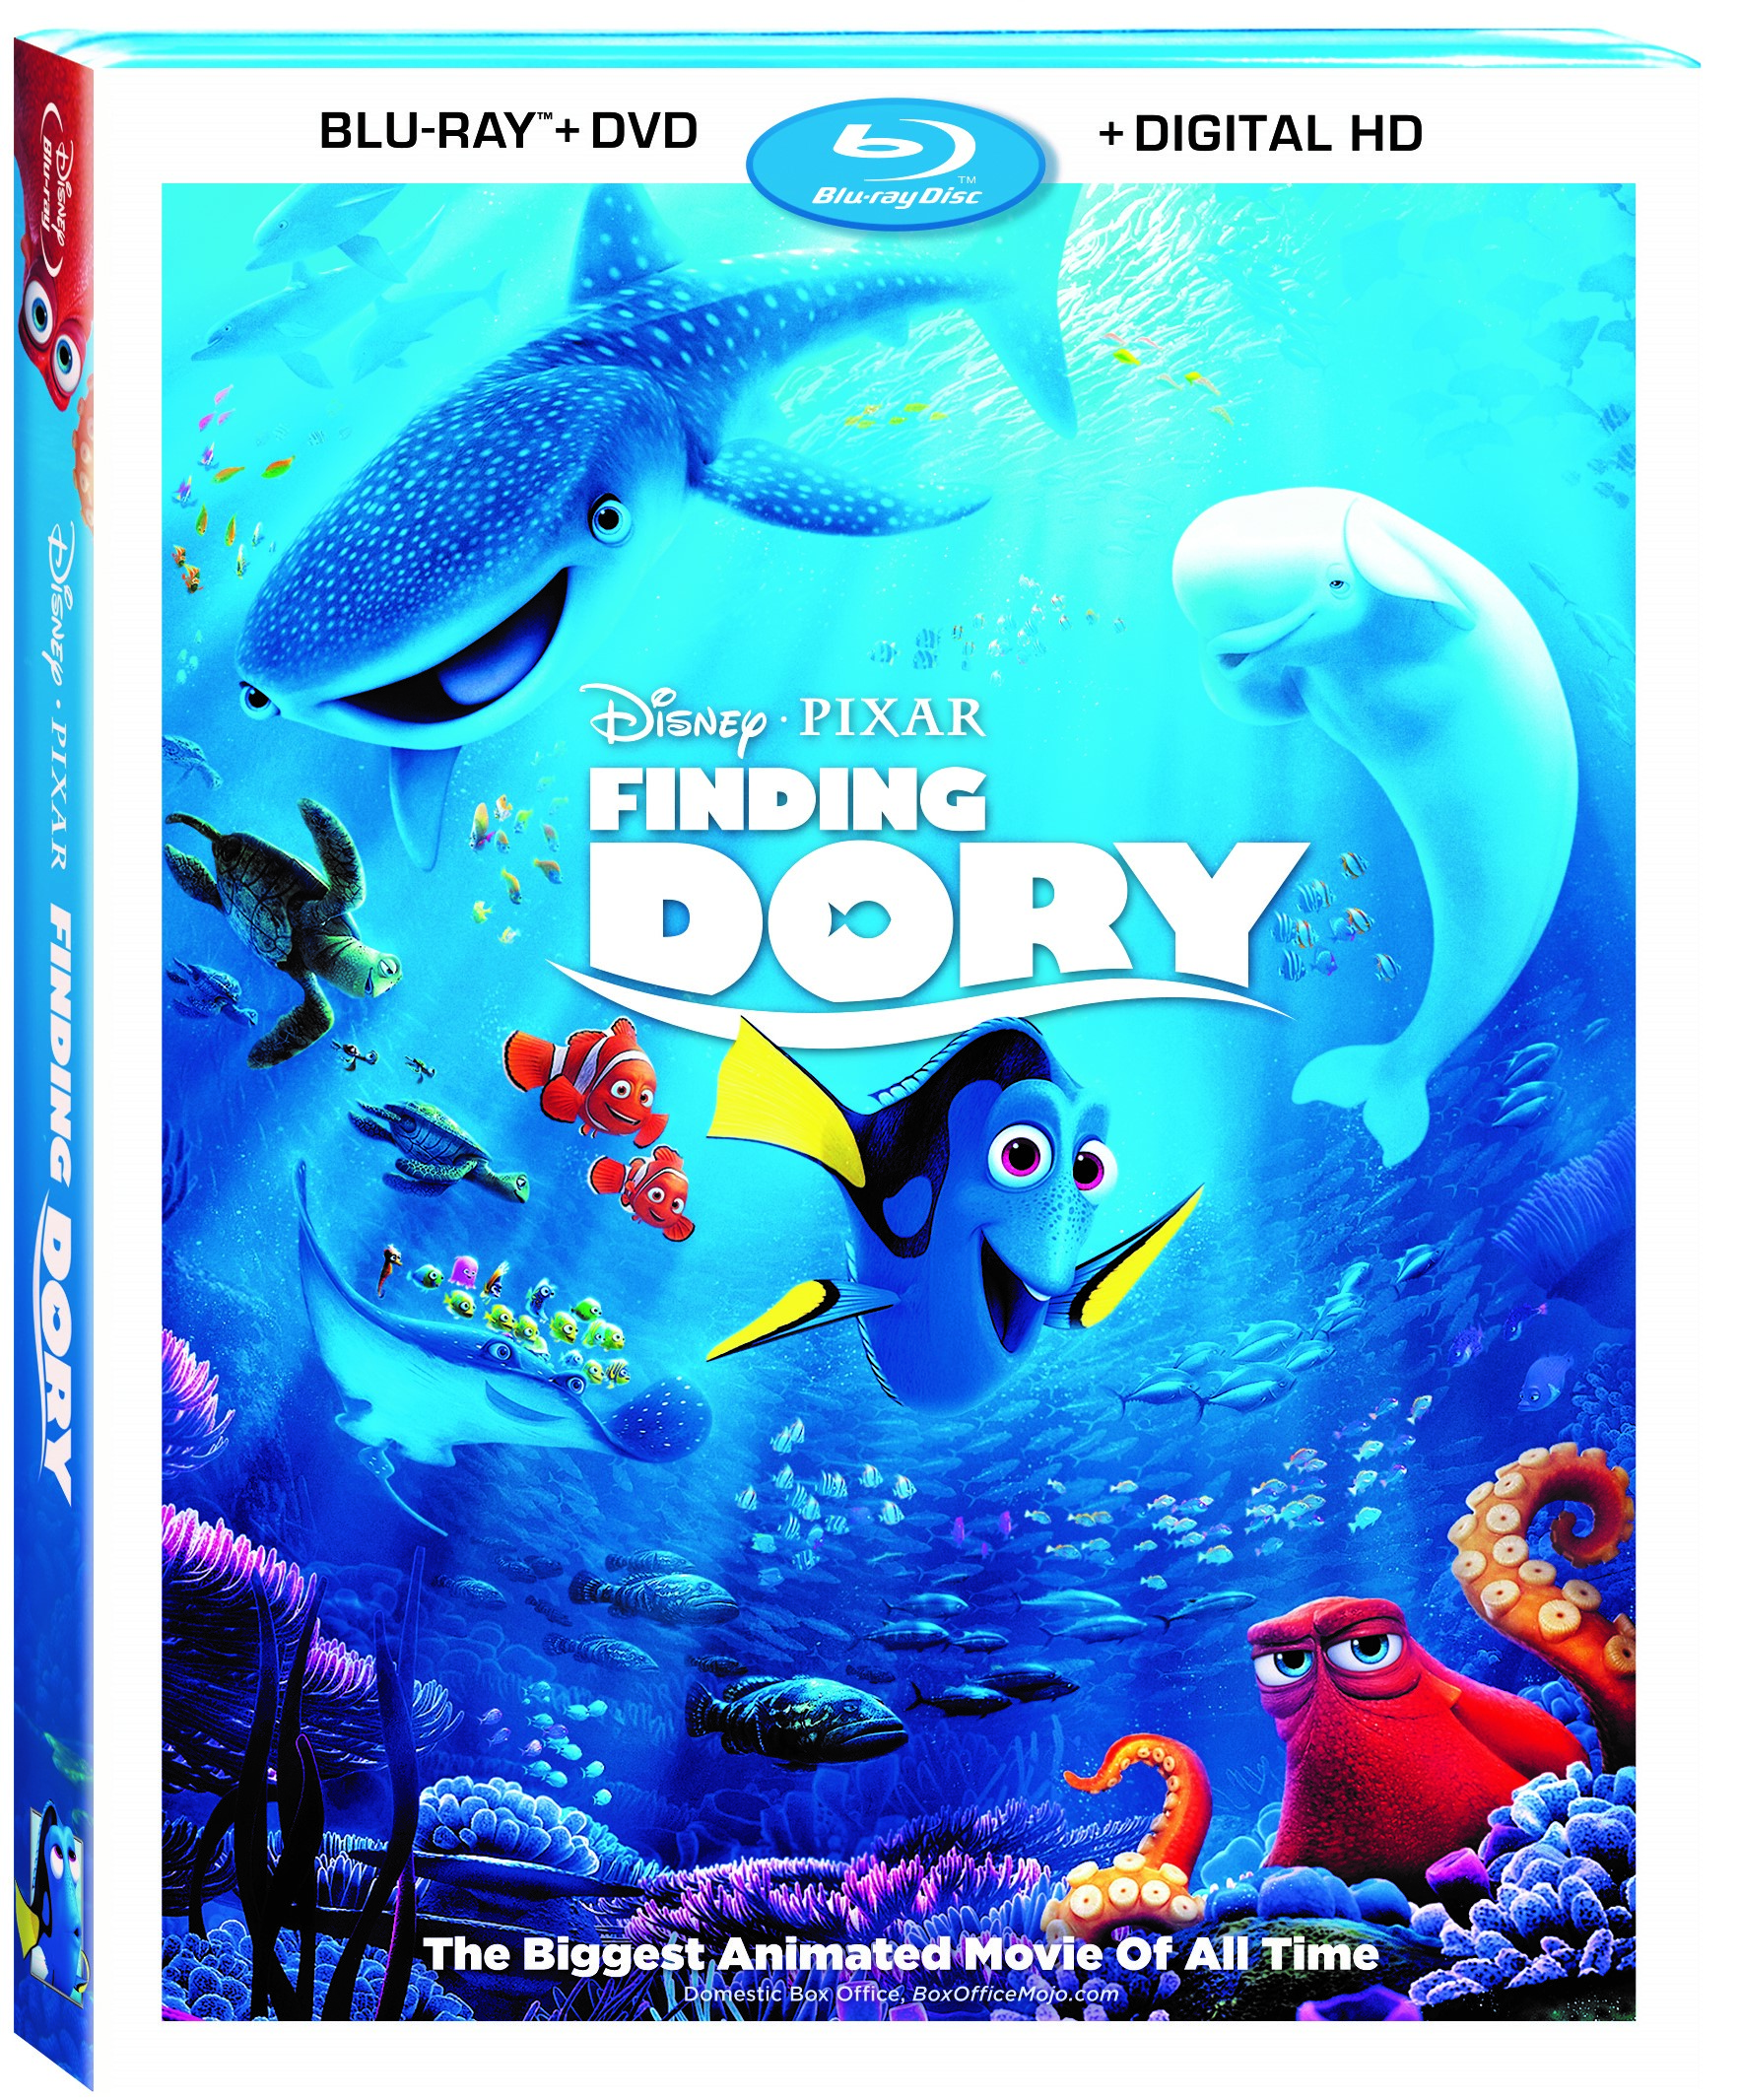 Finding Dory on Blu Ray Makes a Great Stocking Stuffer